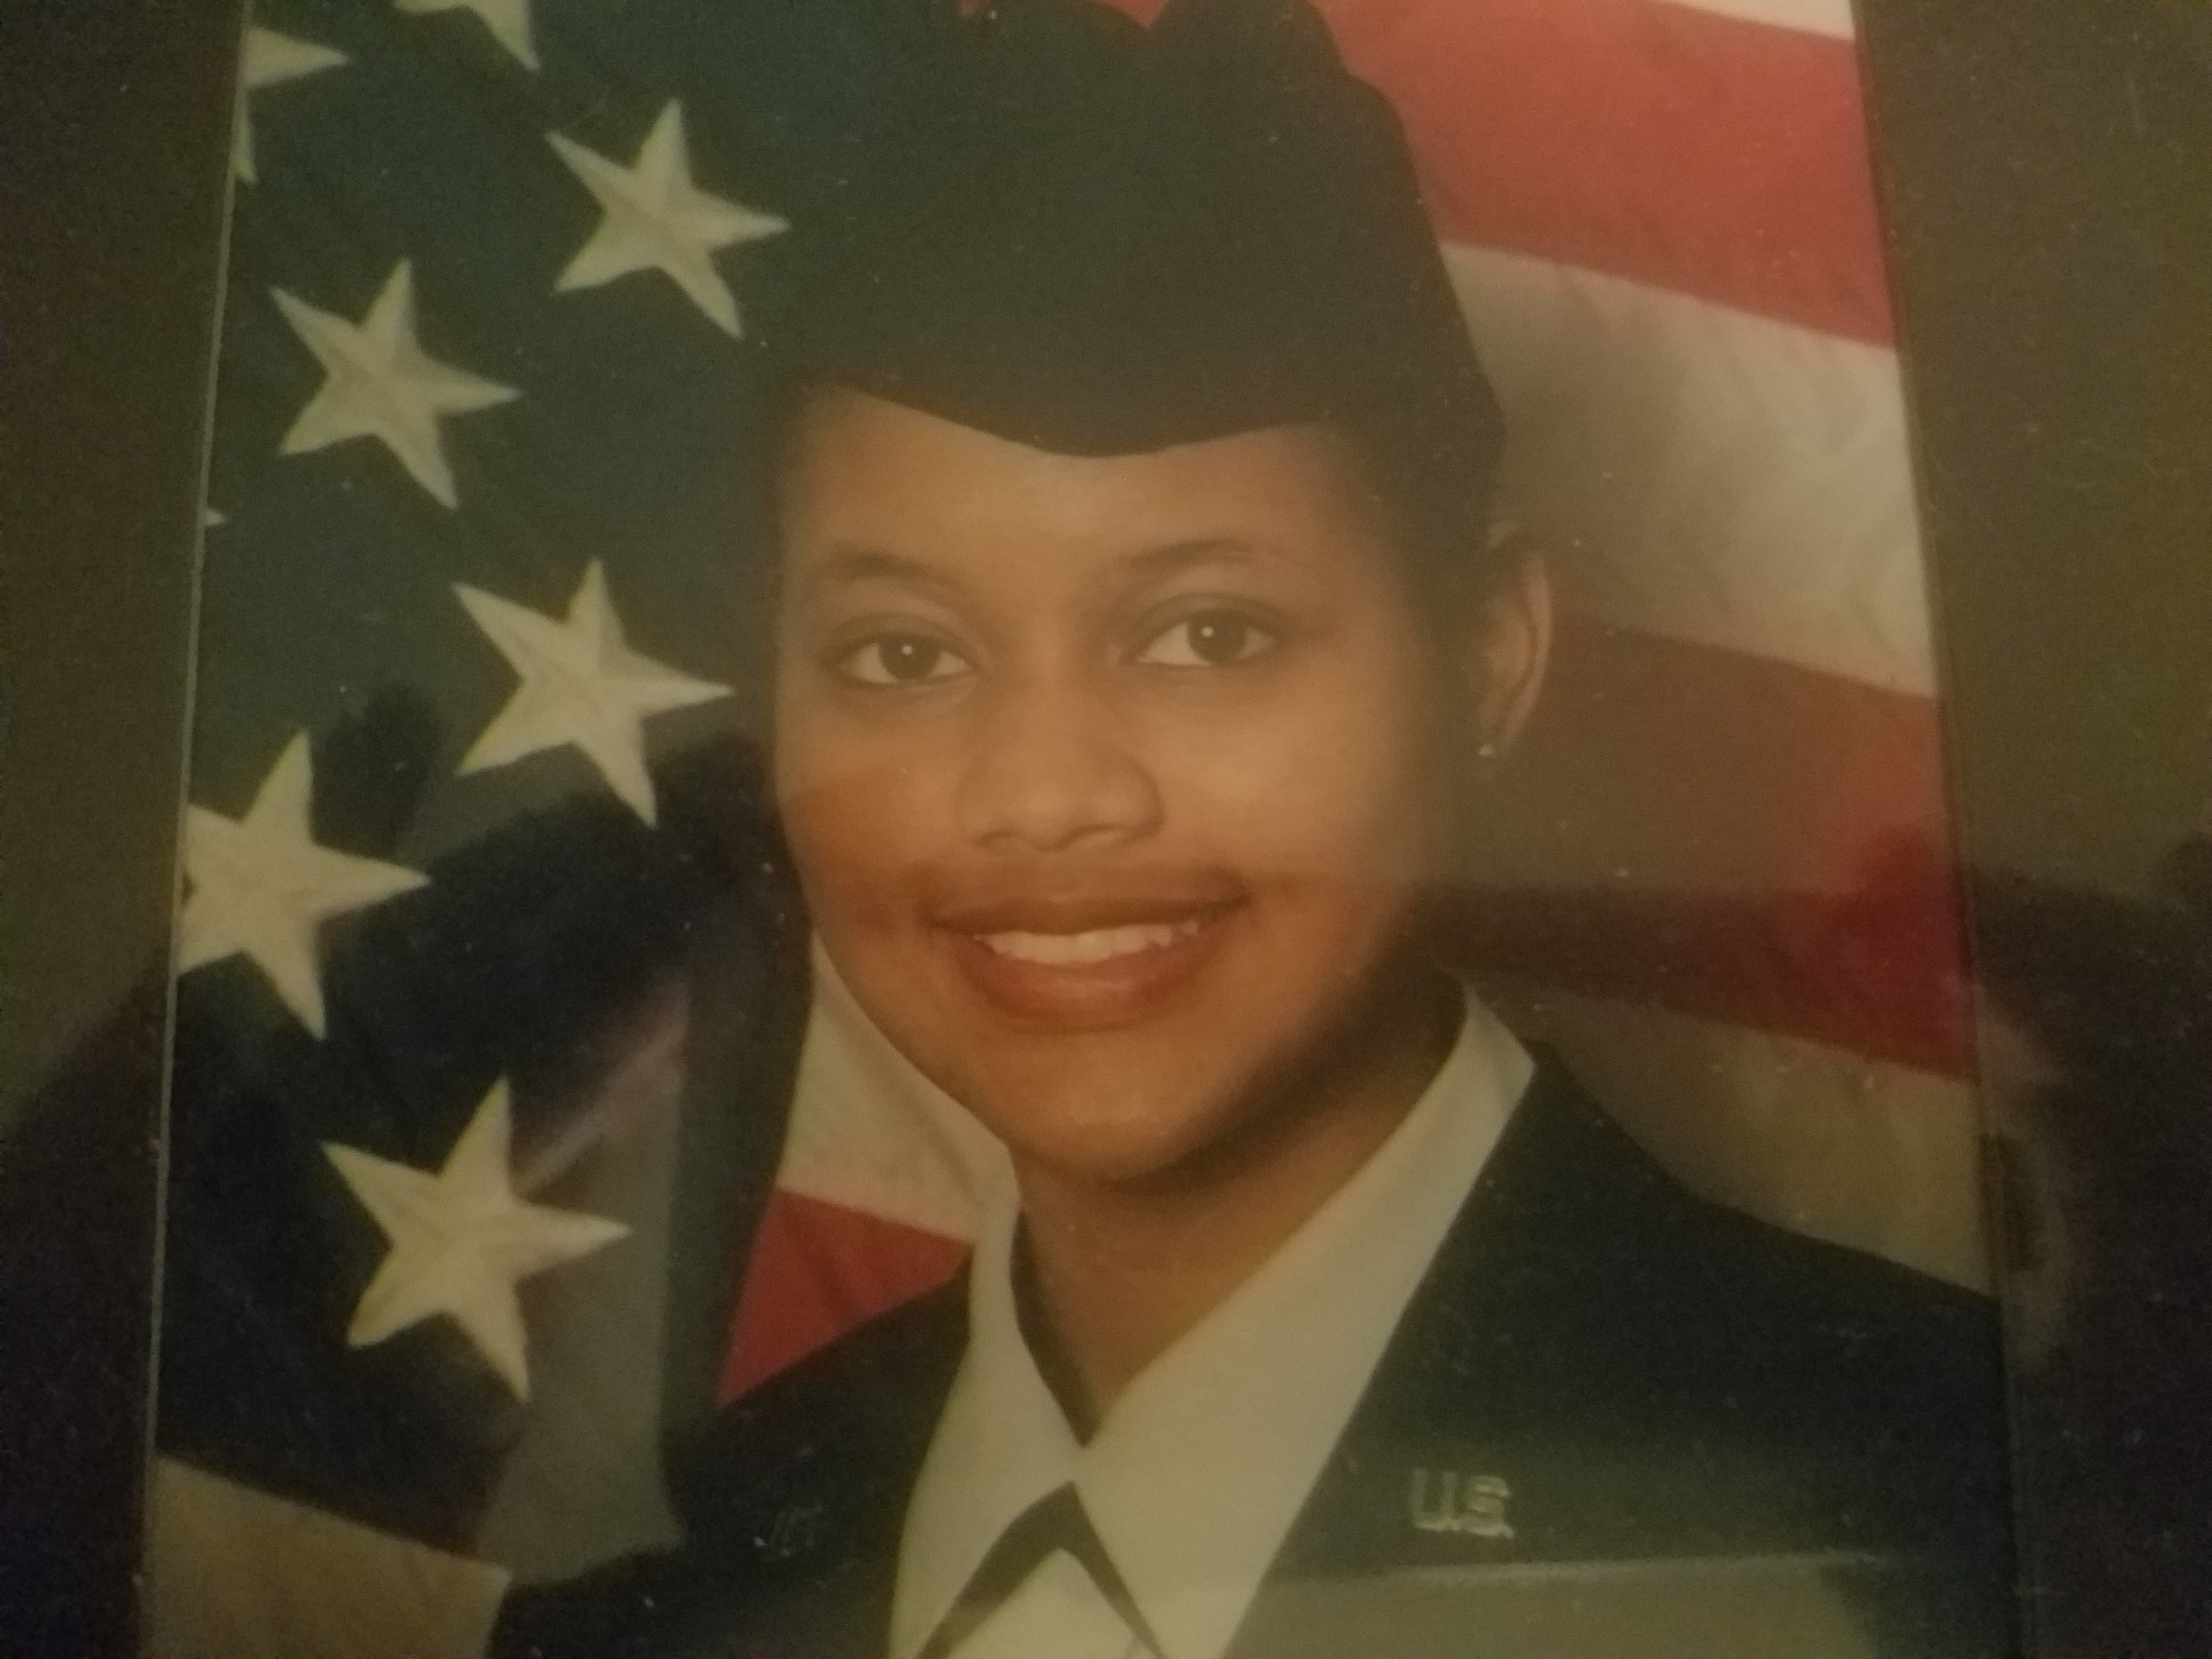 Dreamea Tate in uniform